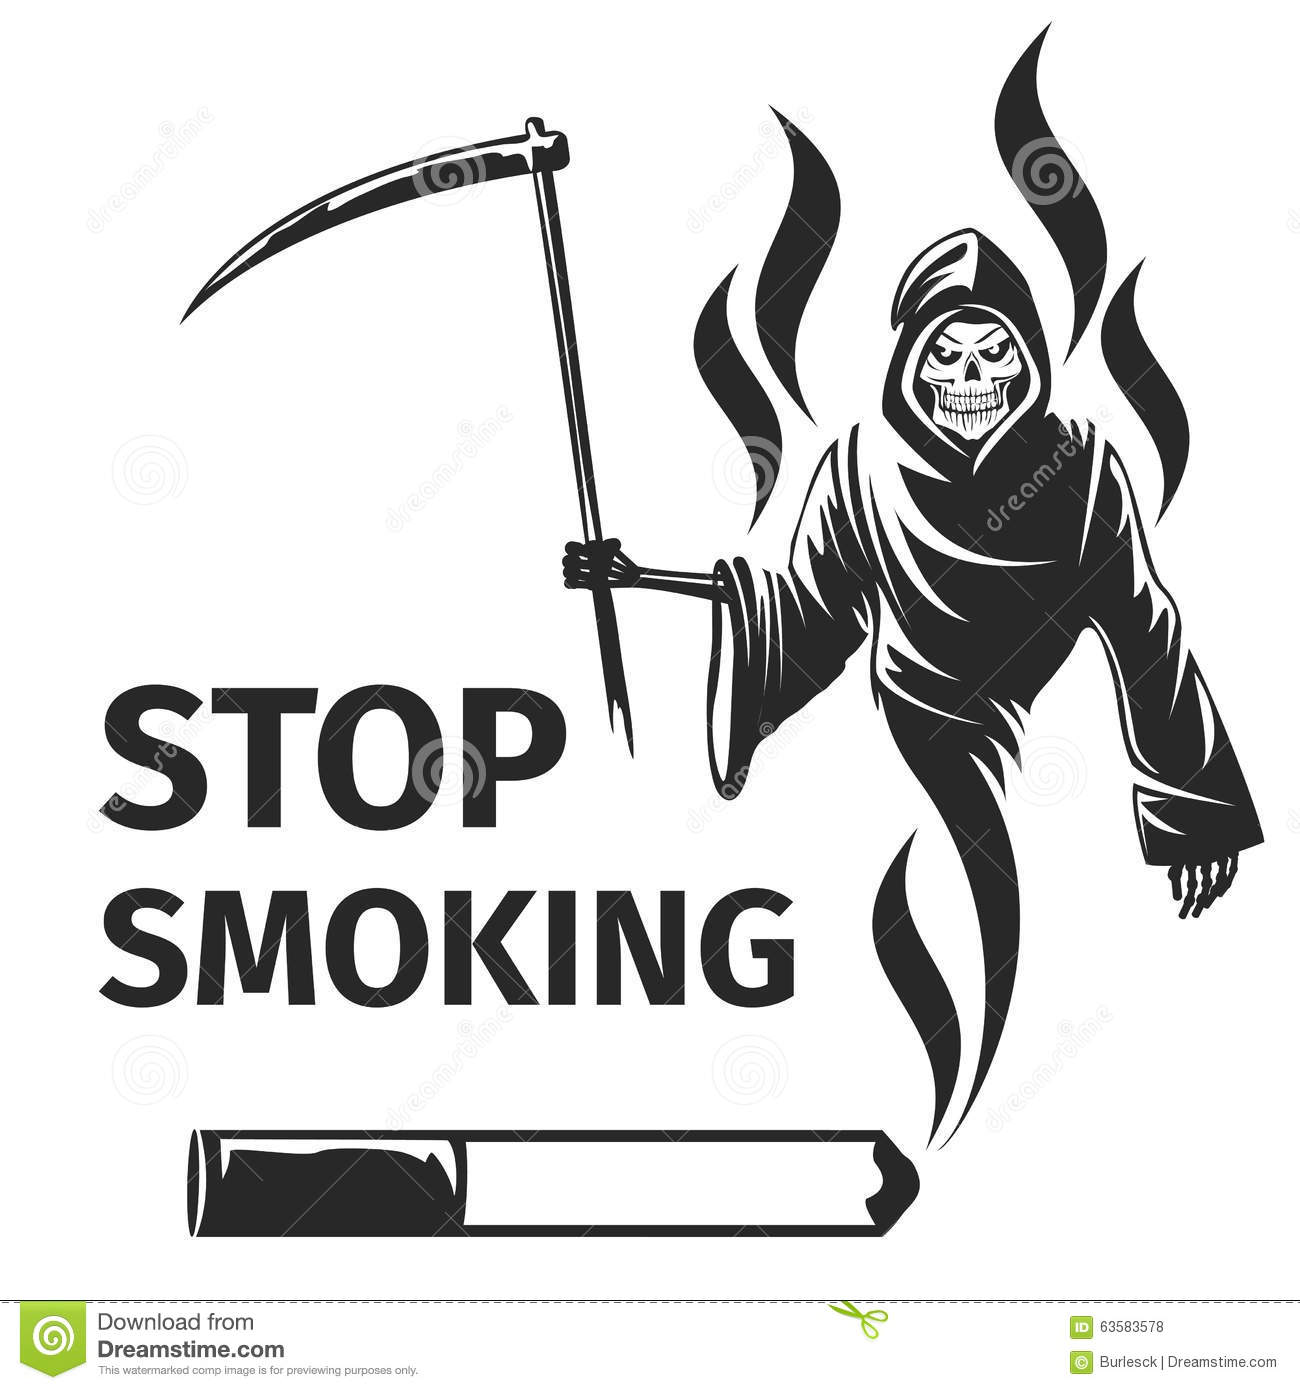 Cigarette Death Sign Black on smoke filter